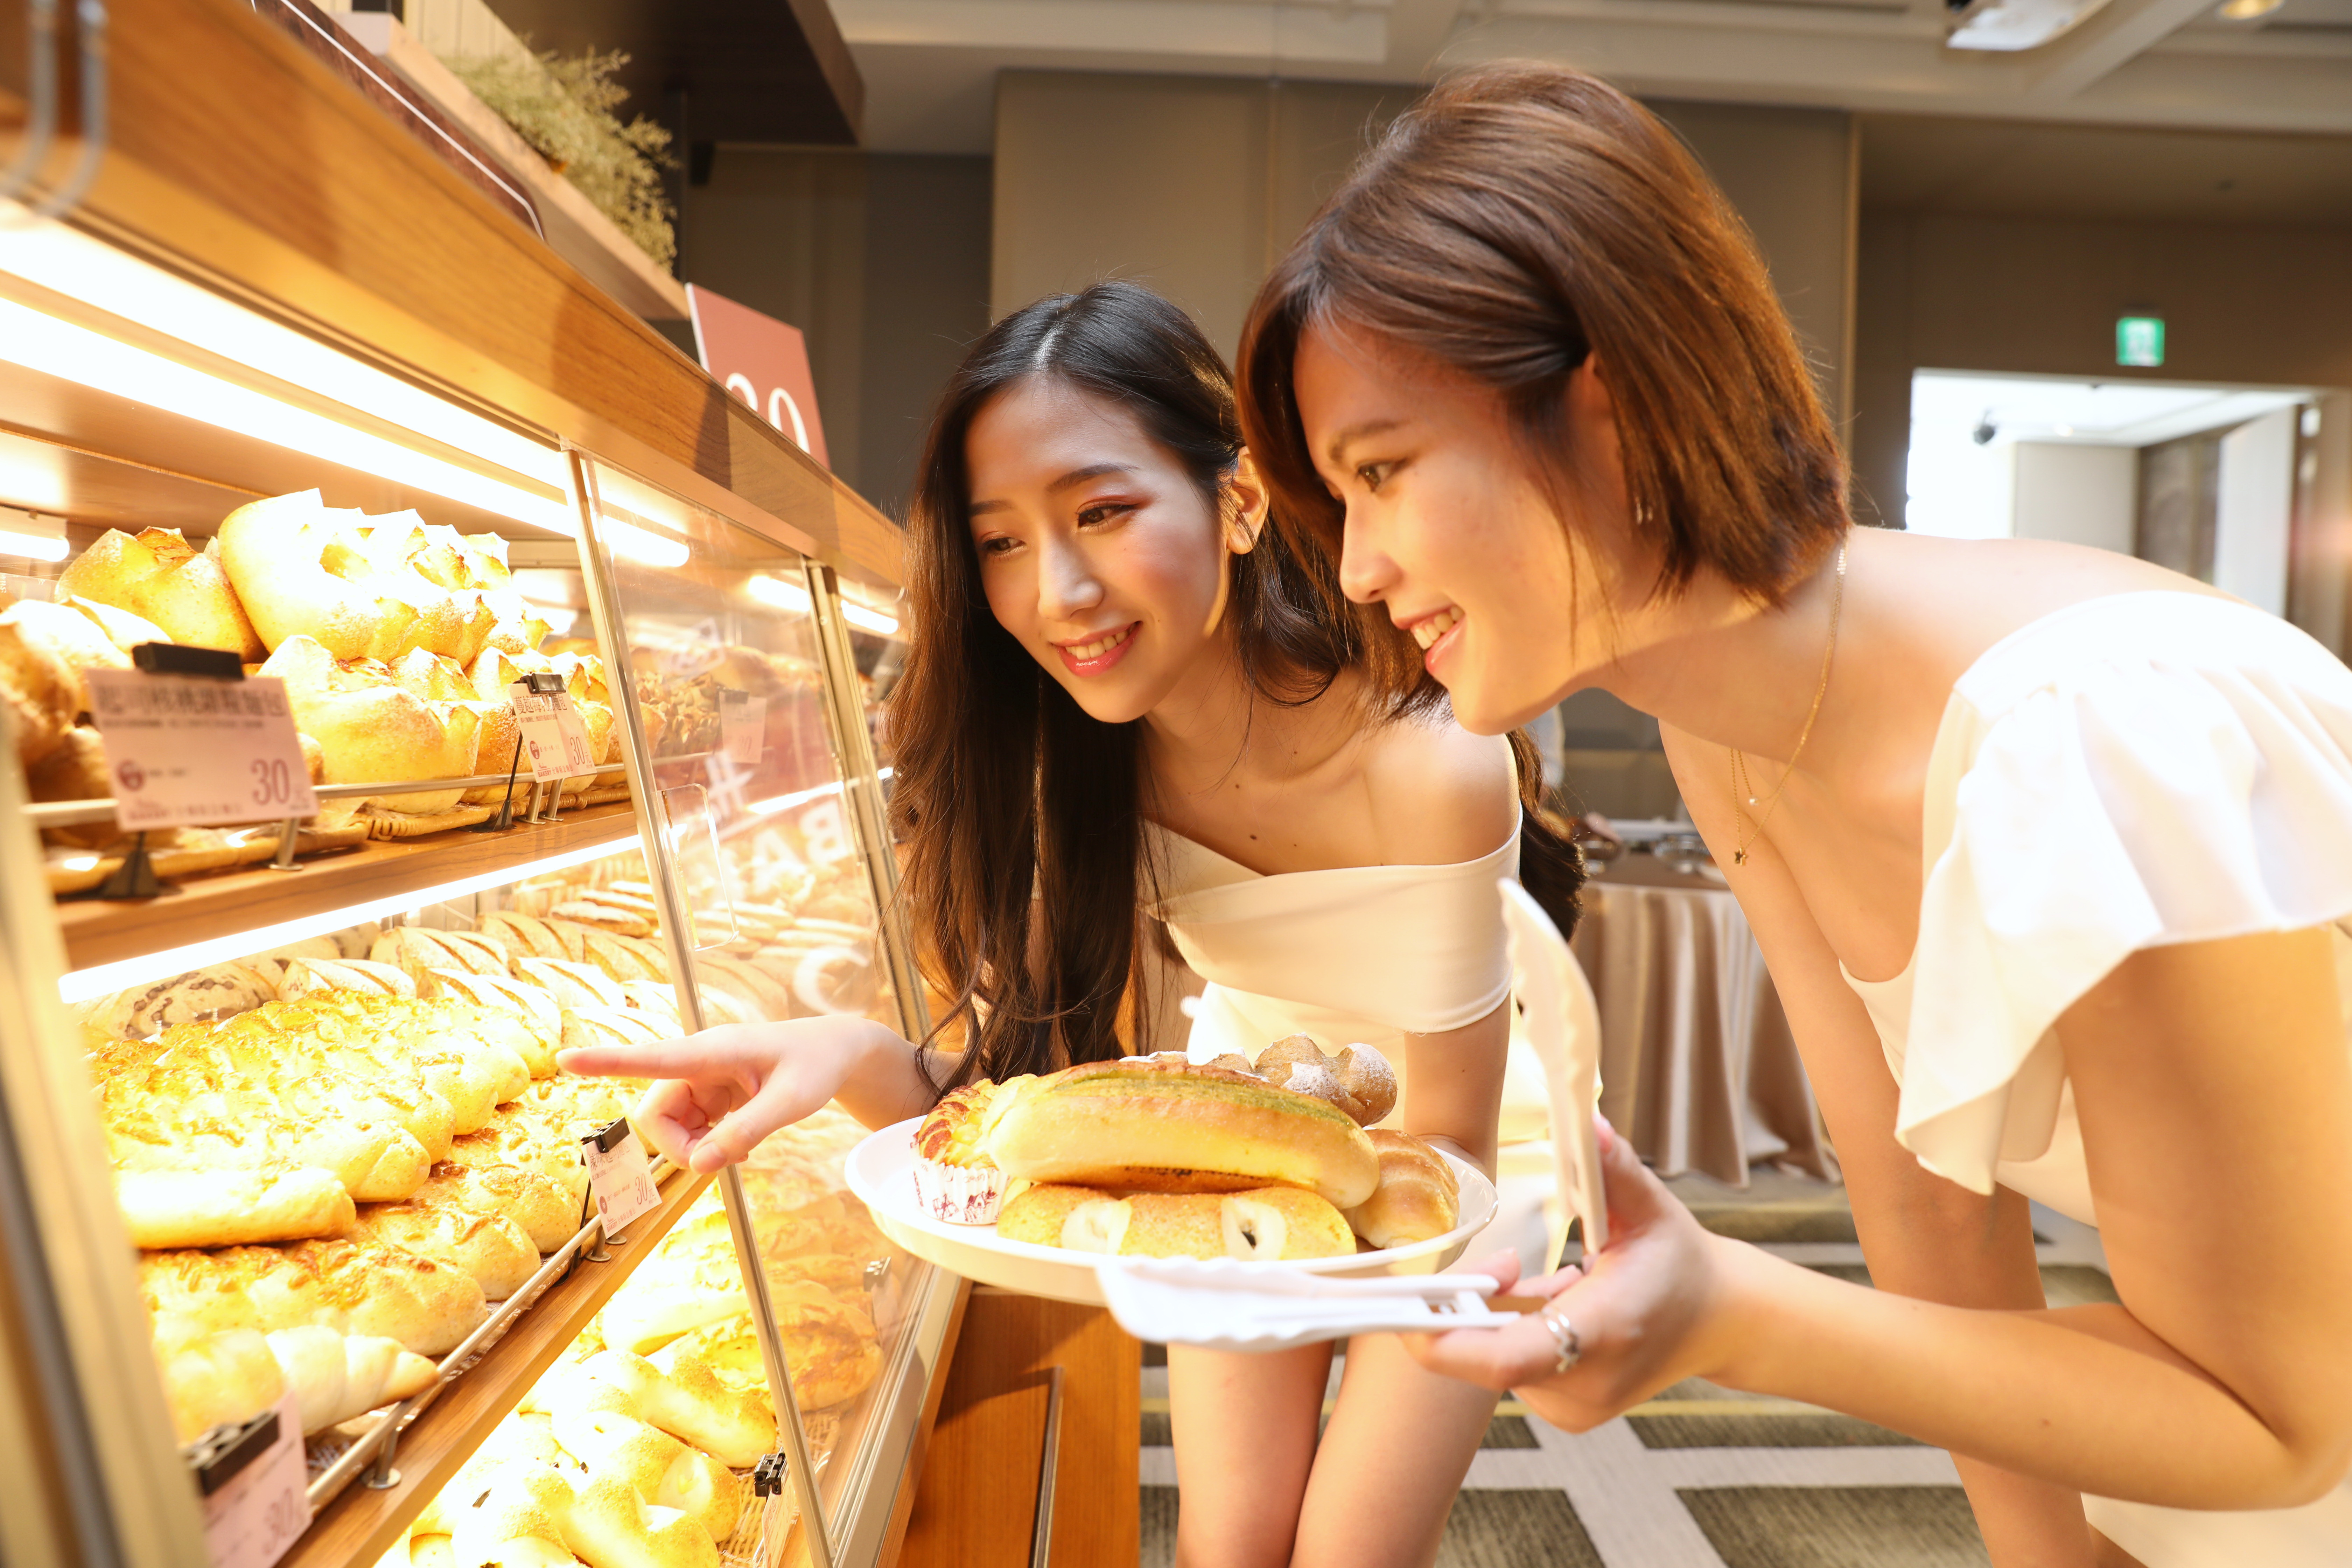 The total union sold a total of 850,000 freshly baked bread last year, with sales of over 23 million yuan. Photo by Van Yunchun